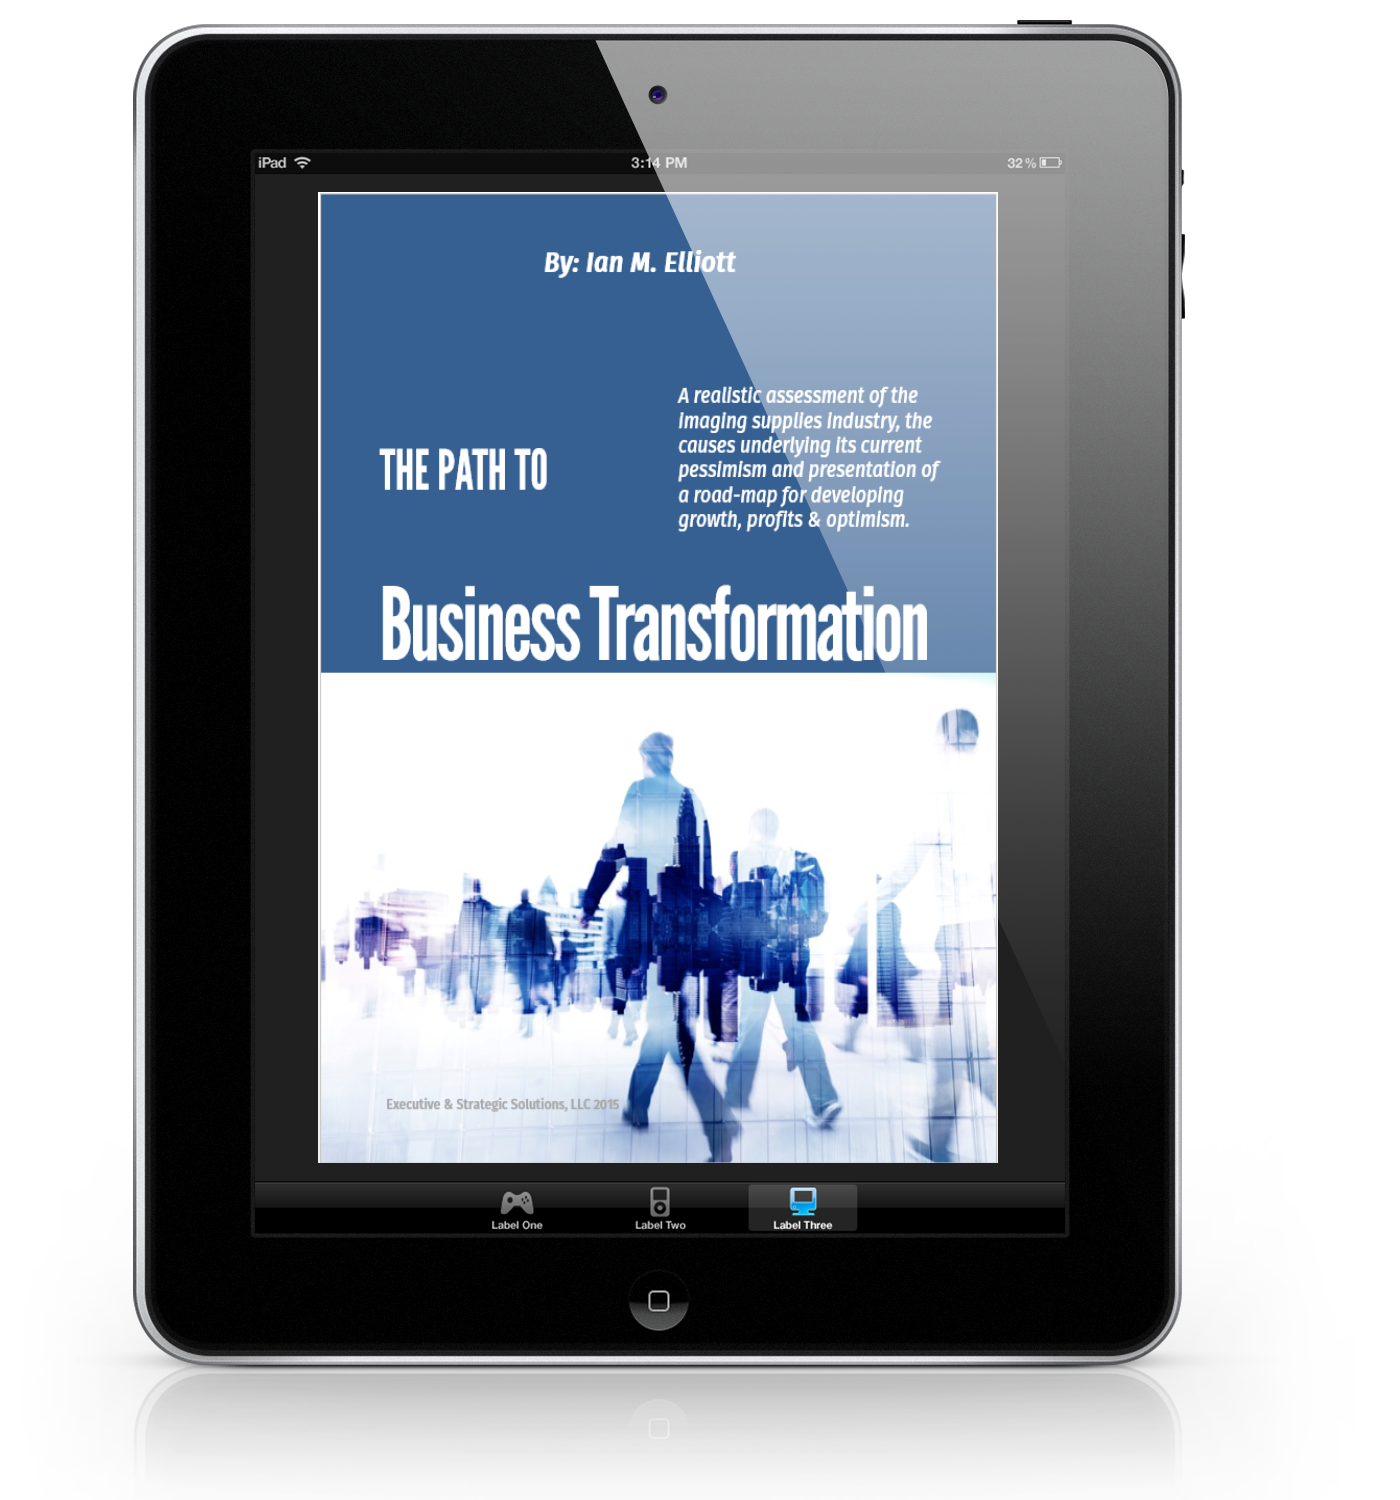 iPad Image of Path to a Business Transformation Cover_2.jpg.png